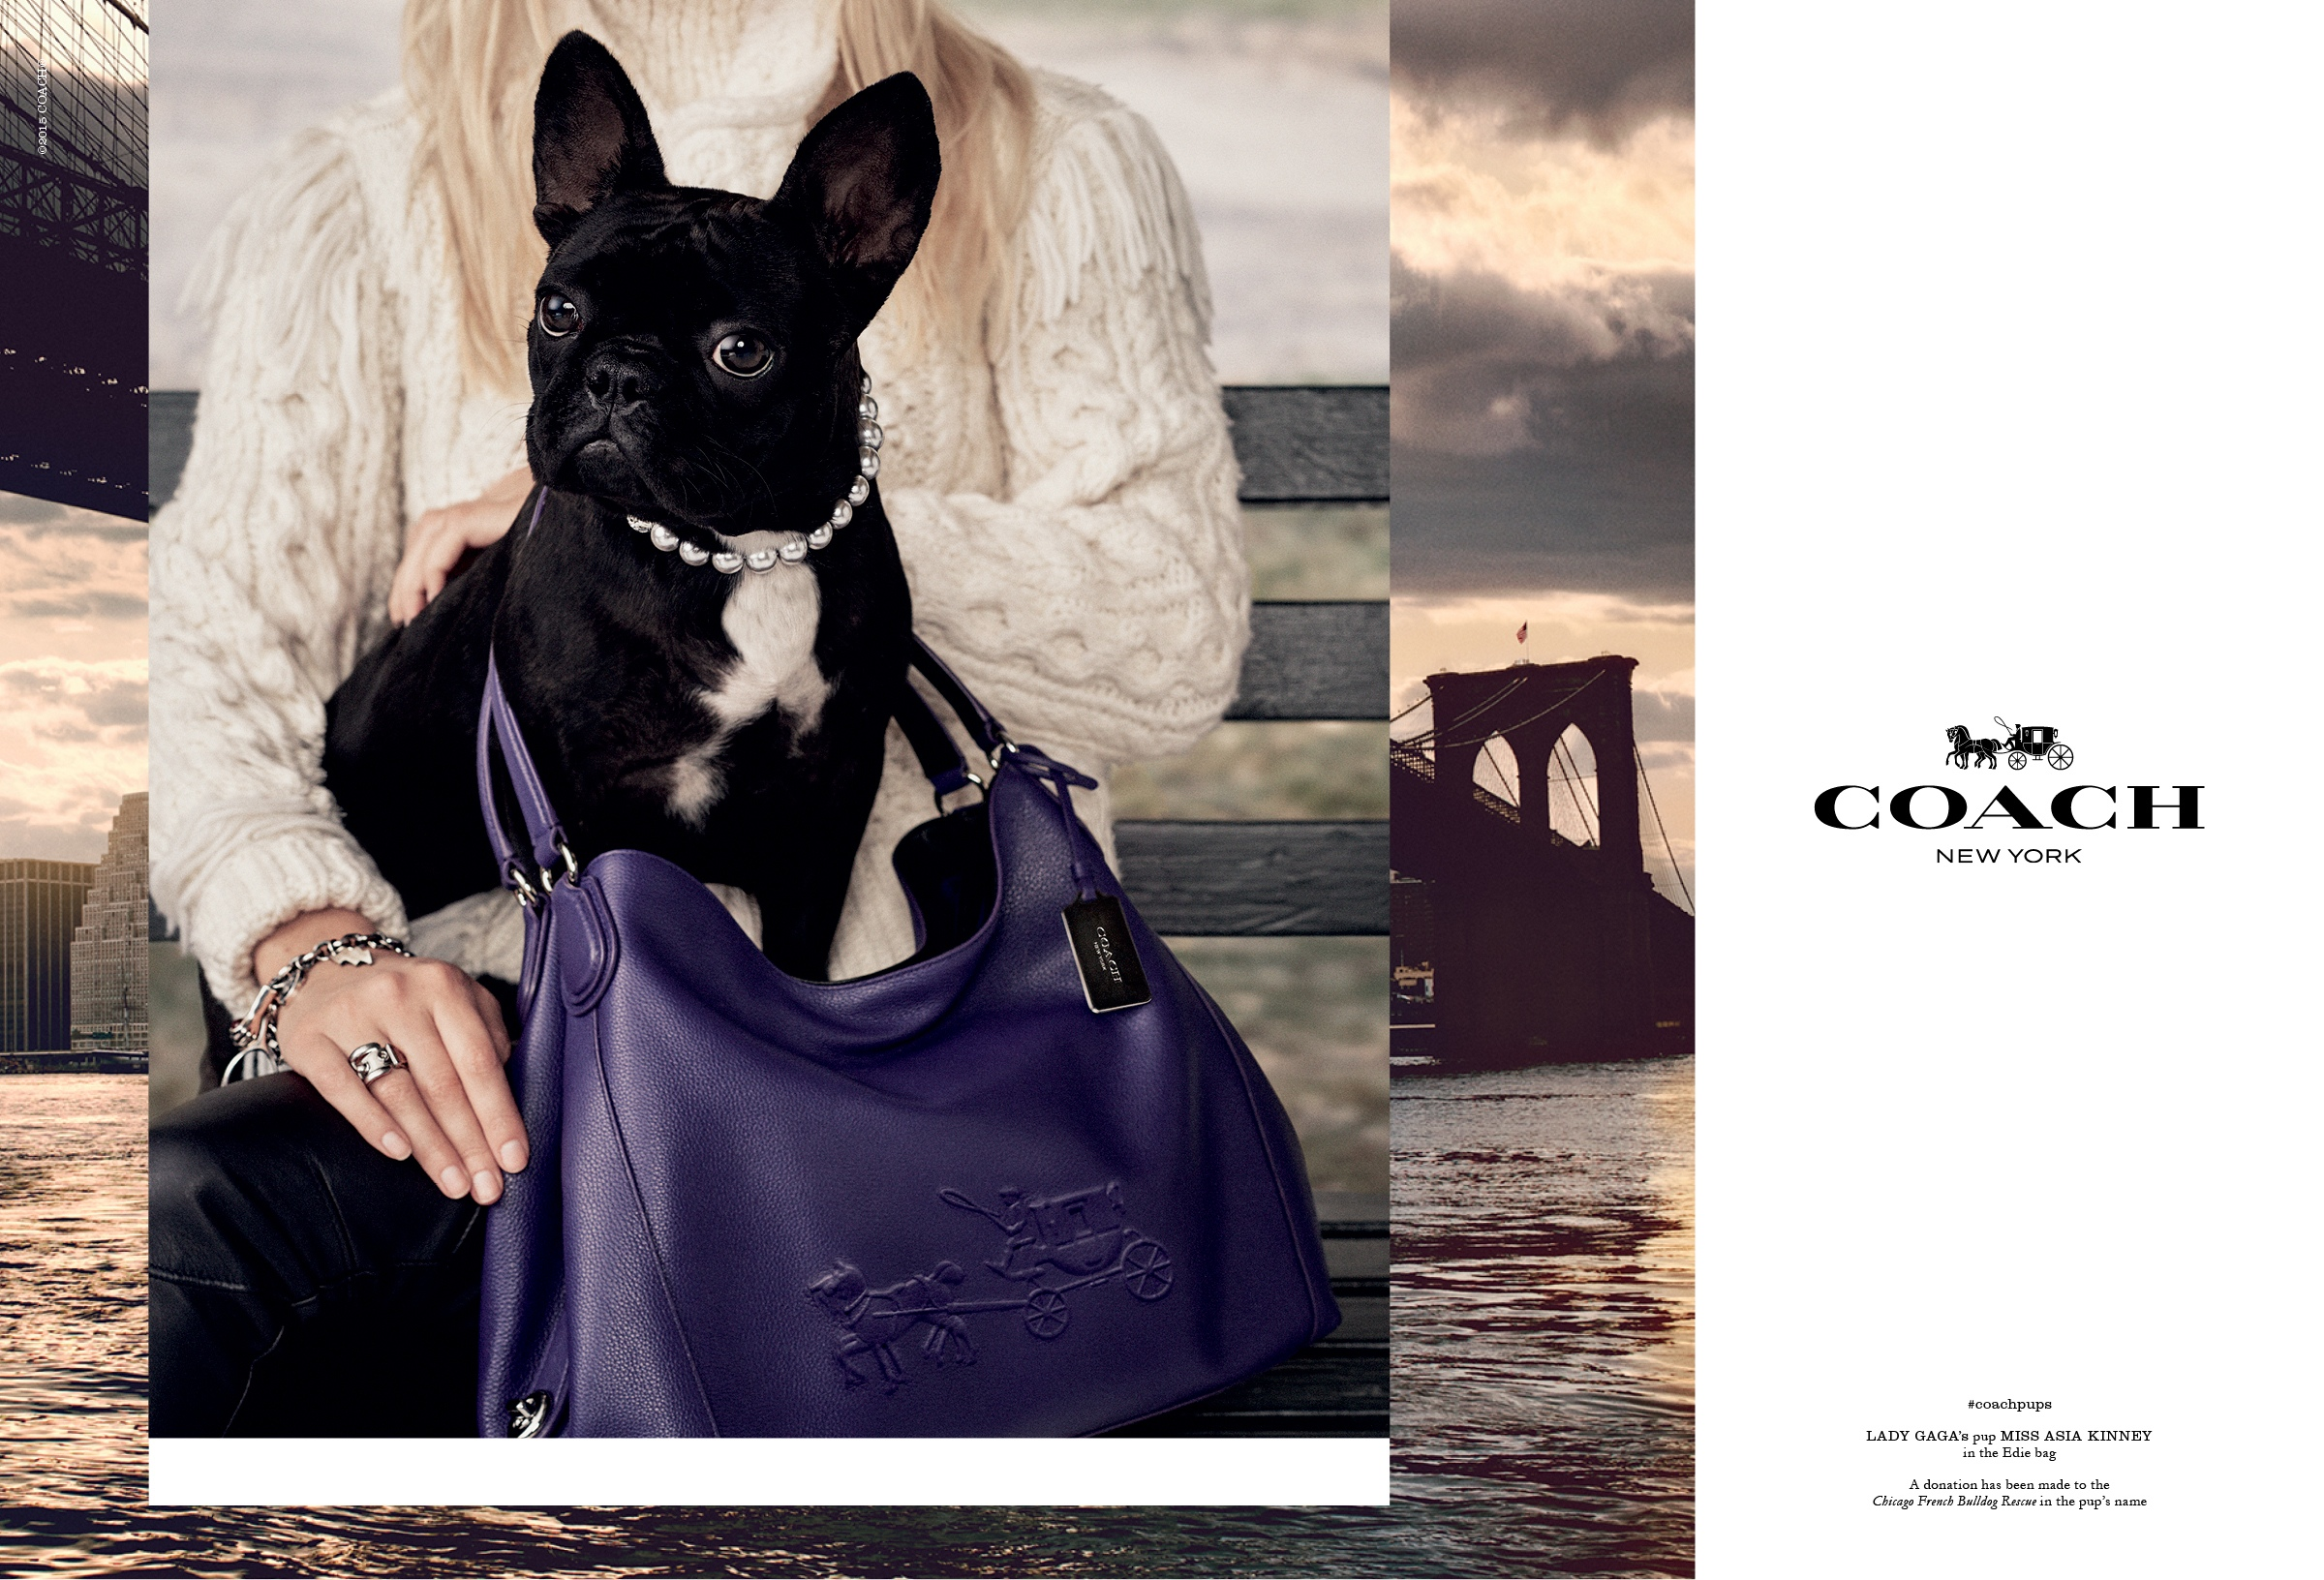 Lady Gaga's French Bulldog is new face of Coach